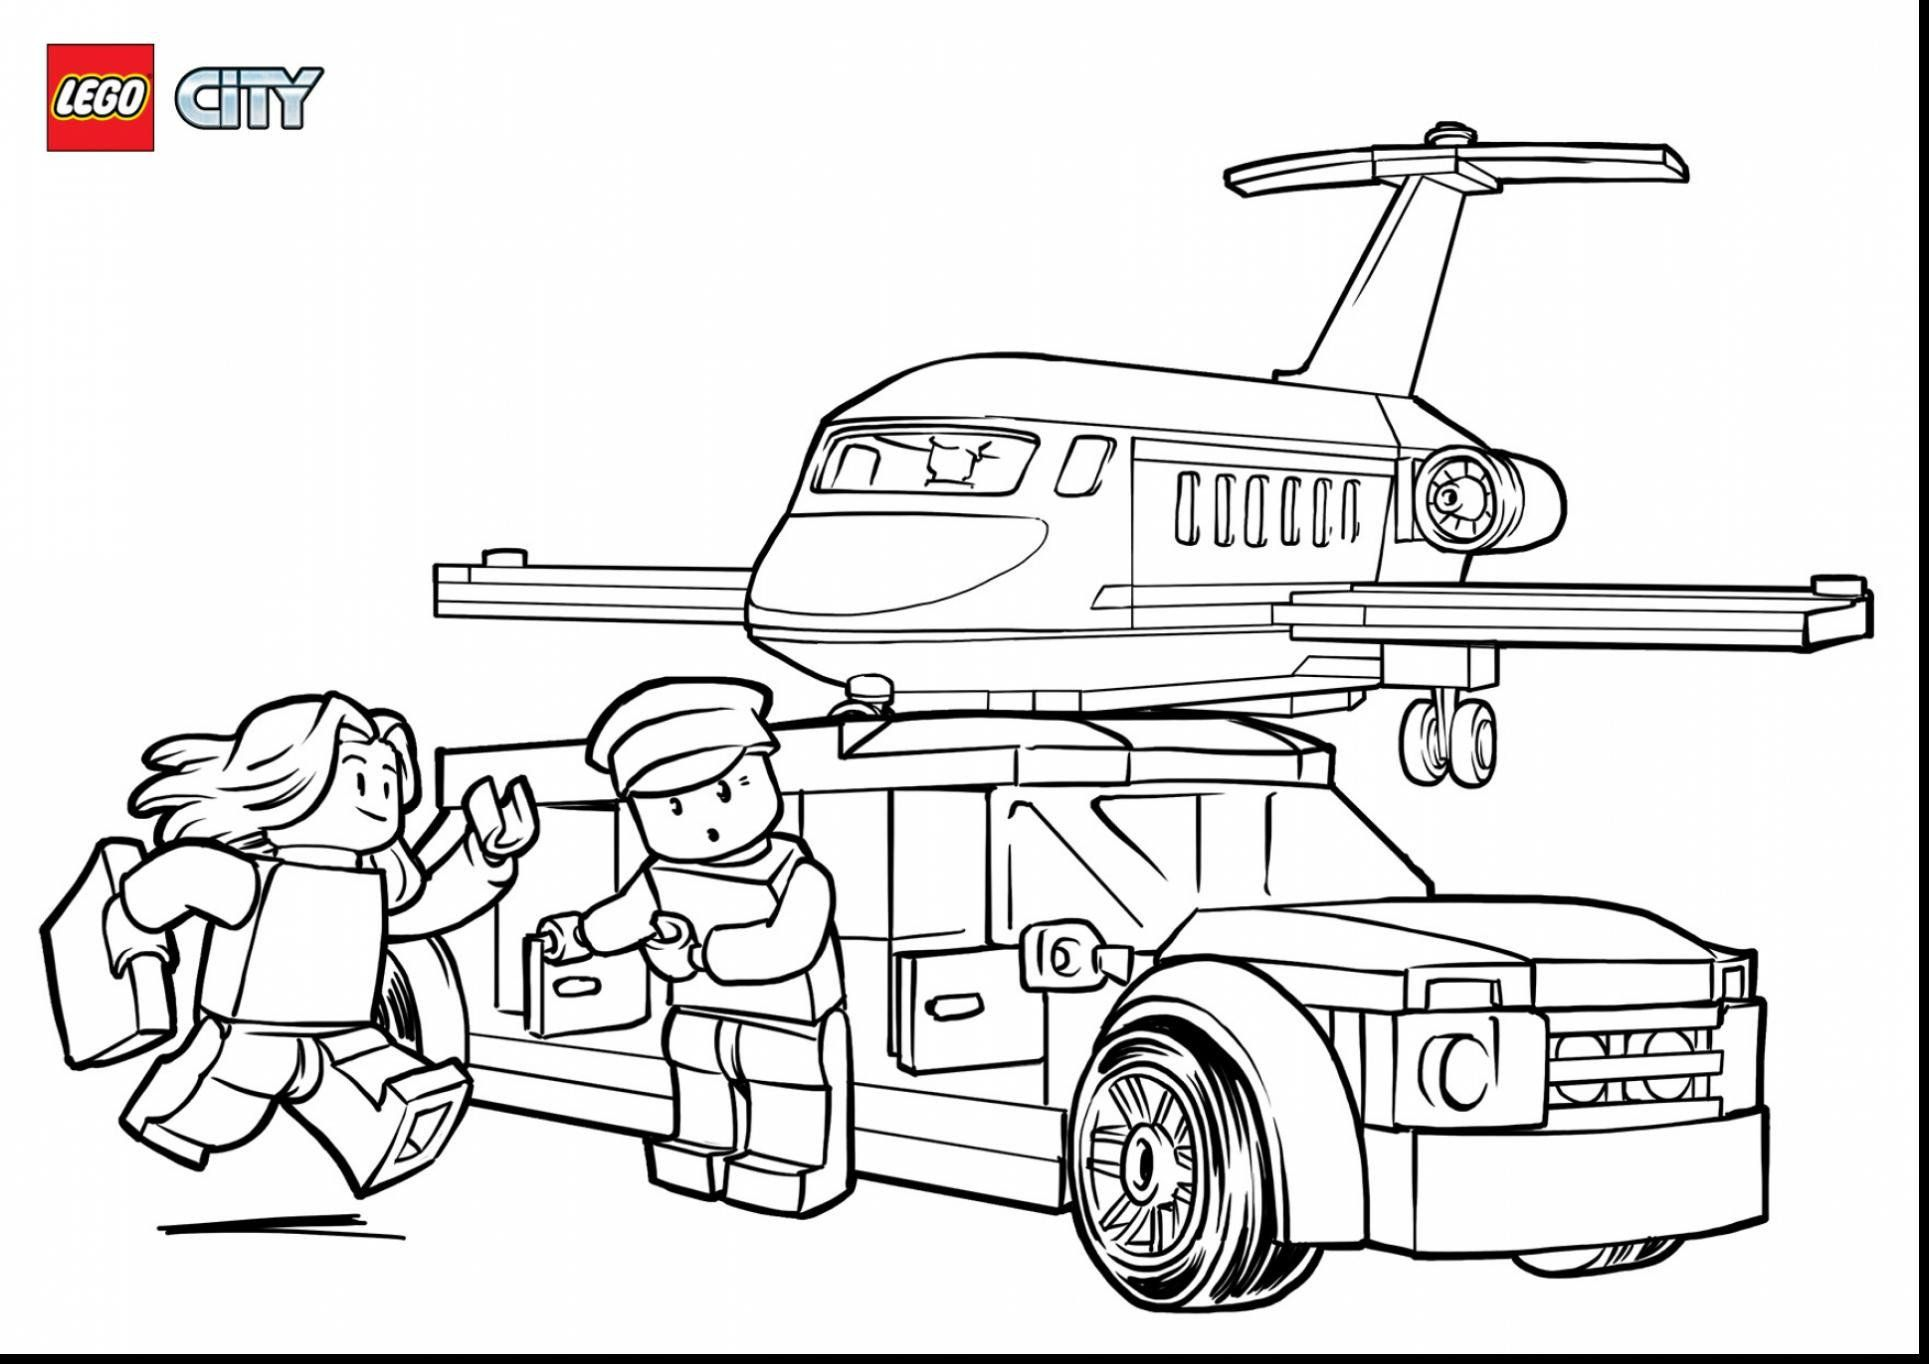 Lego We Do Ideen Lego Coloring Lego Coloring Pages Lego City Undercover